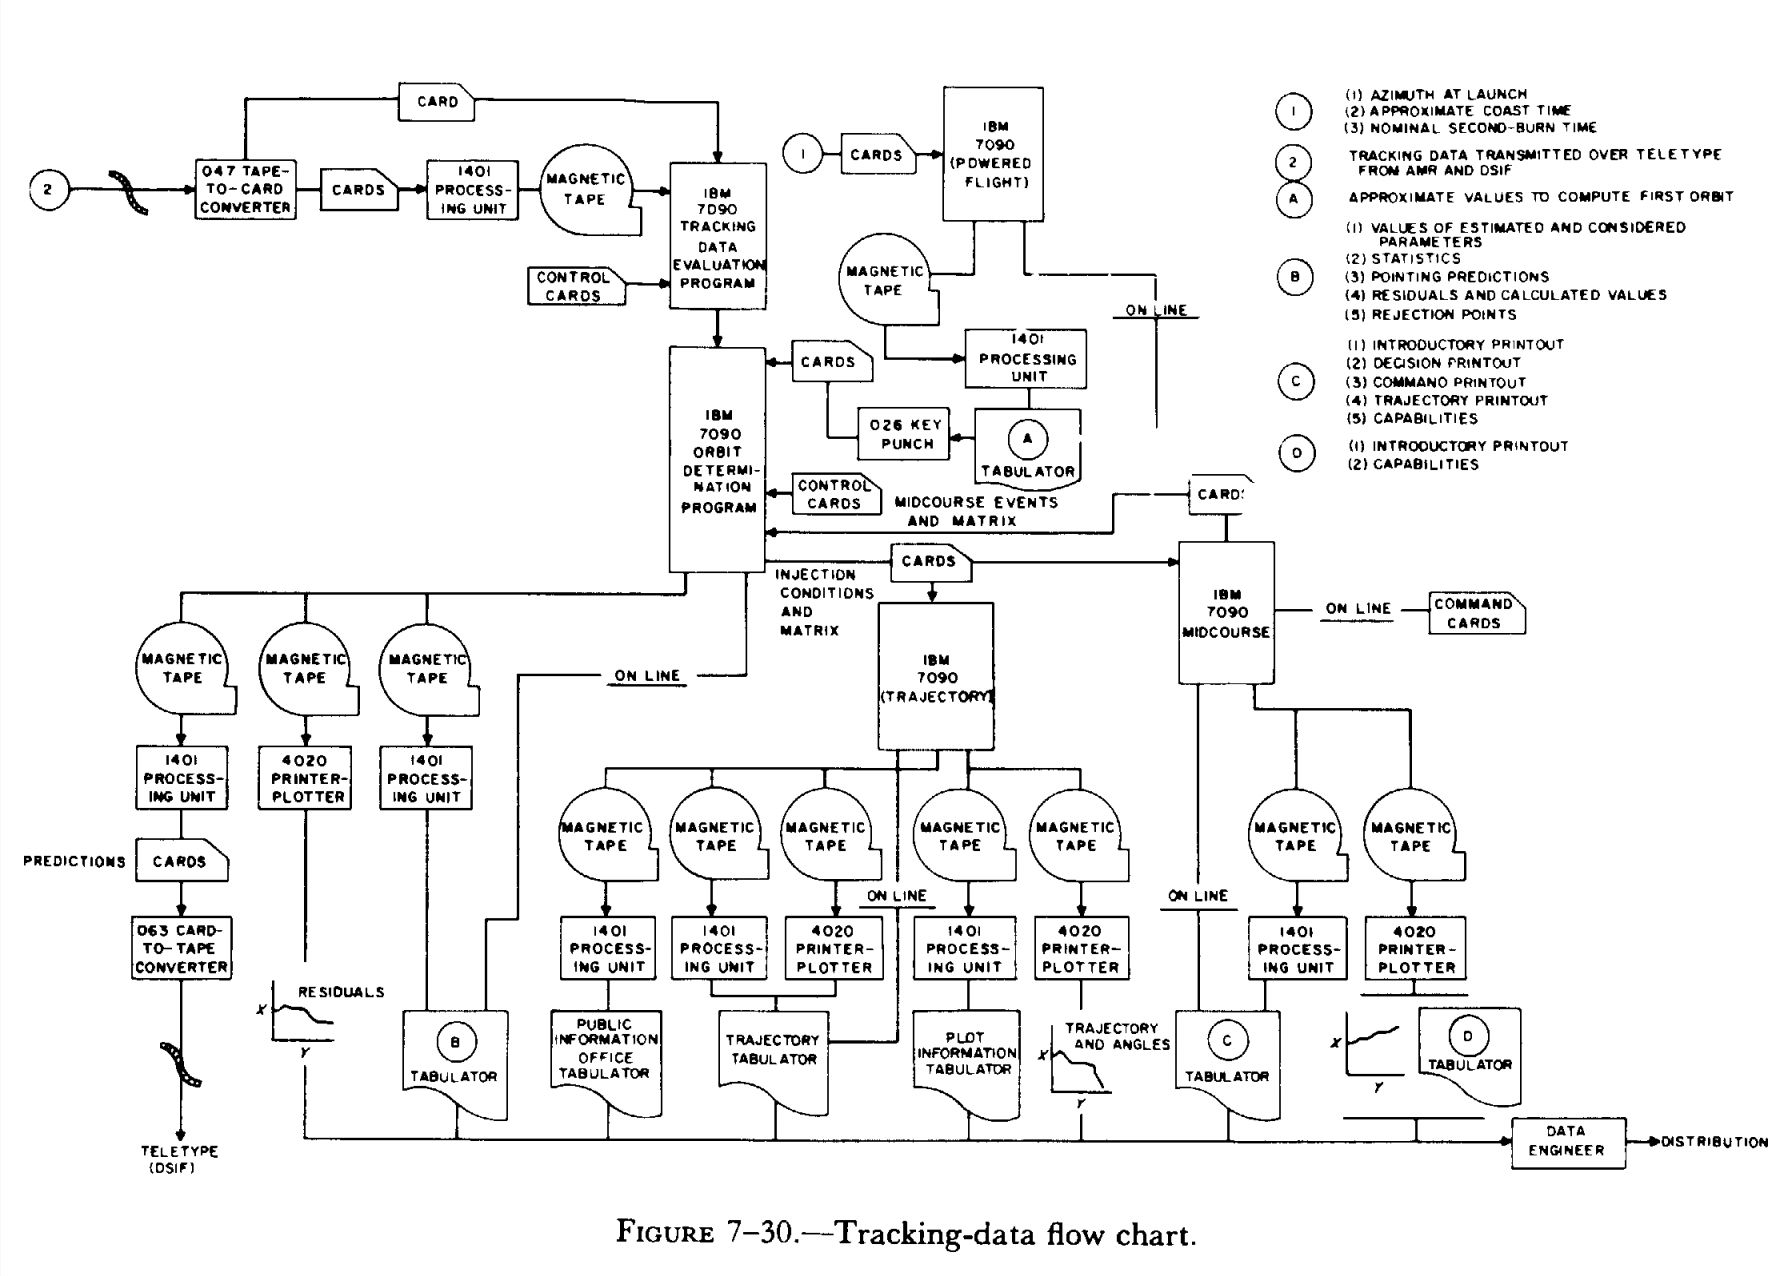 Clinic Process Flow Chart: Tracking-data flow chart.jpg - Wikimedia Commons,Chart